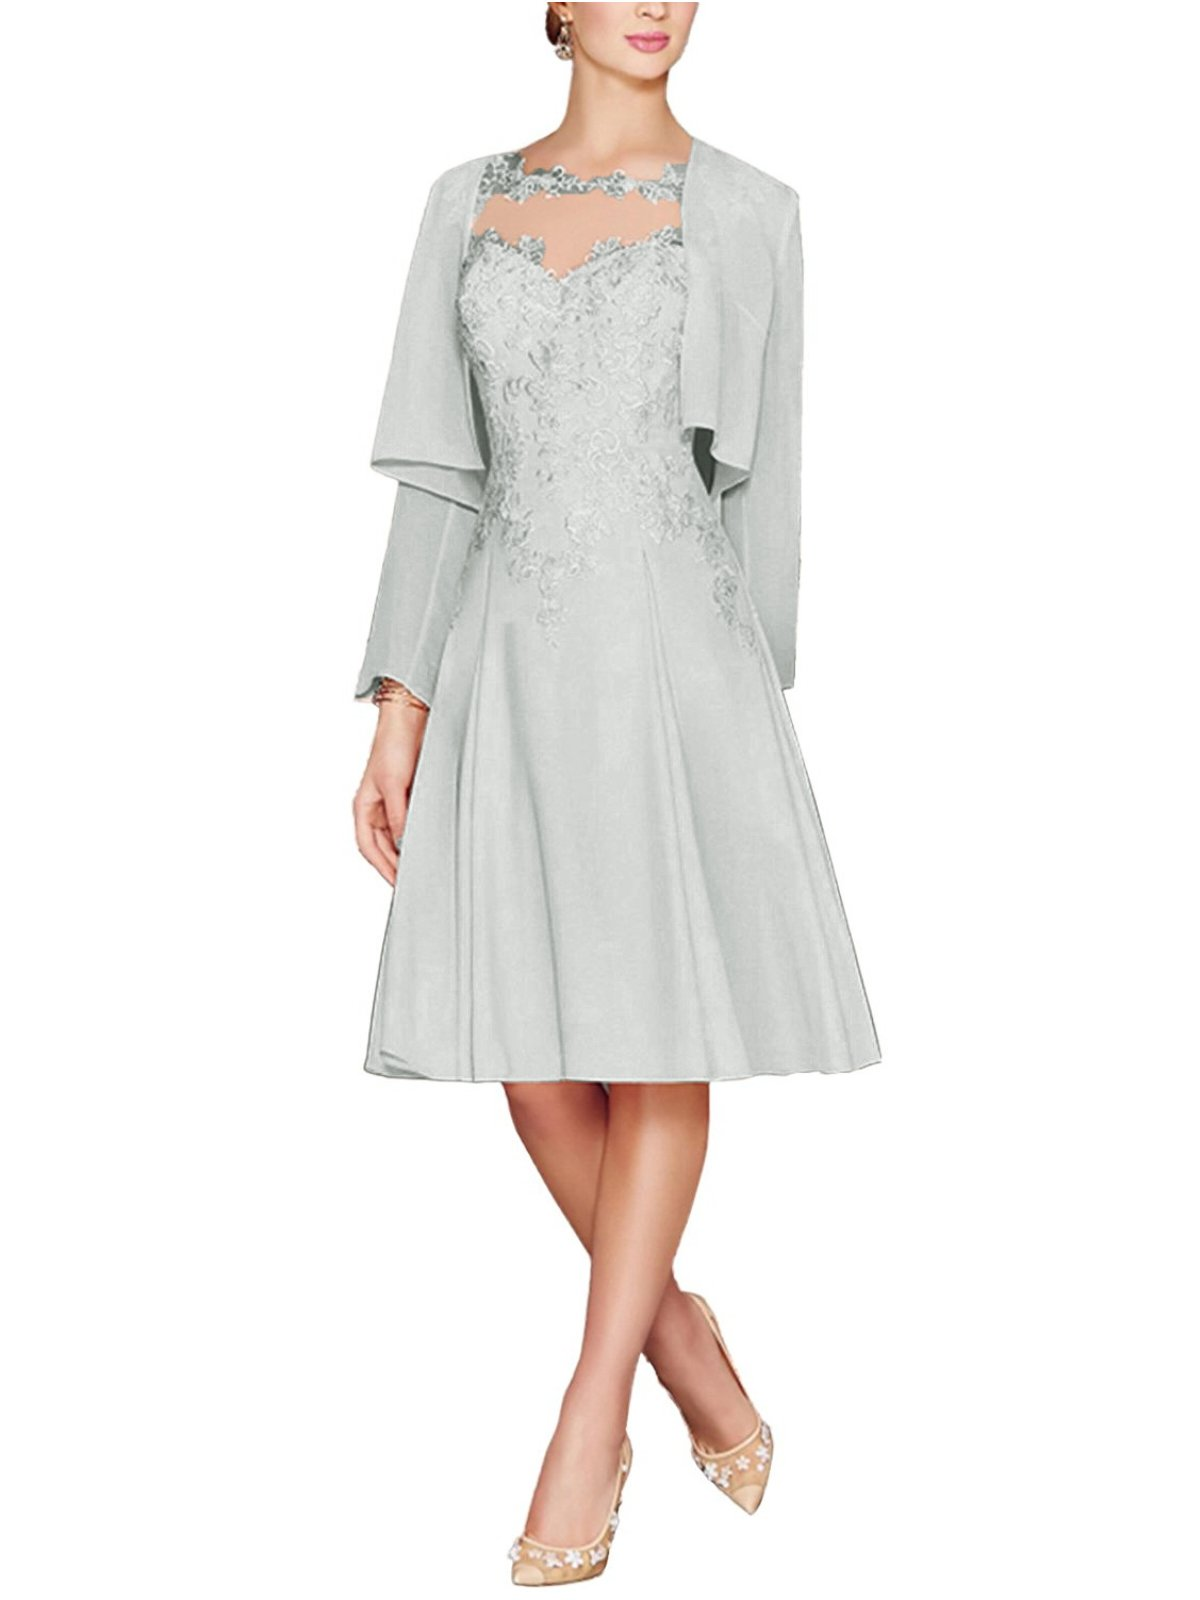 ea91b35f72b ... Tea Length Lace Chiffon Mother of The Bride Dresses Two Pieces with  Jacket Silver US8.   